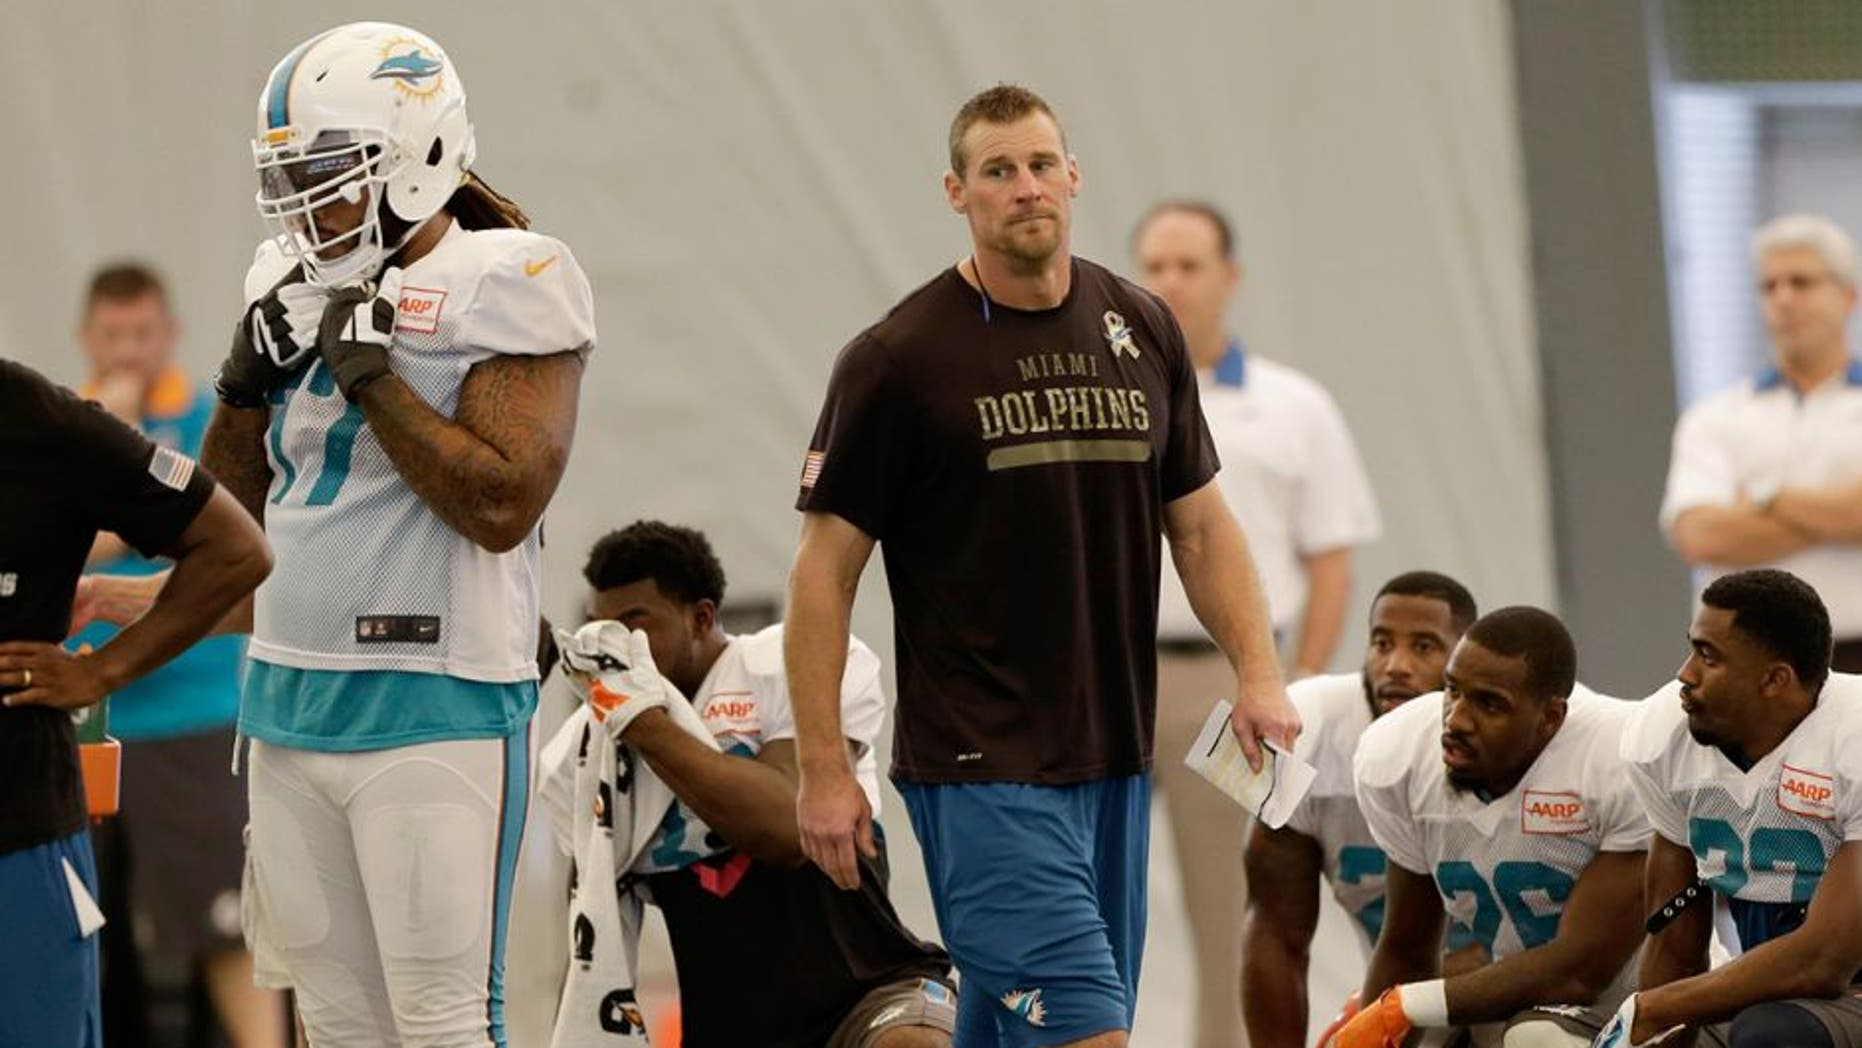 Miami Dolphins interim coach Dan Campbell walks on the field during NFL football practice in Davie, Fla., Wednesday, Oct. 7, 2015. (AP Photo/Alan Diaz)